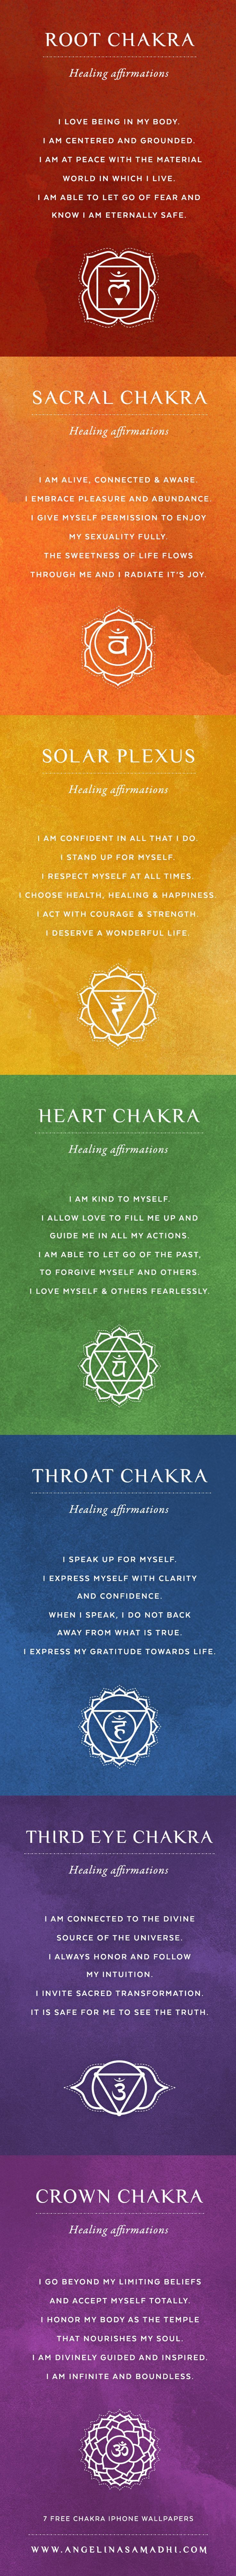 Chakra Affirmation iPhone Wallpapers ॐ Align your chakras through the conscious direction of your thoughts :) Root, Sacral, Solar Plexus, Heart, Throat, Third Eye, Crown #Namaste #Chakras #Affirmations #Om #Symbols